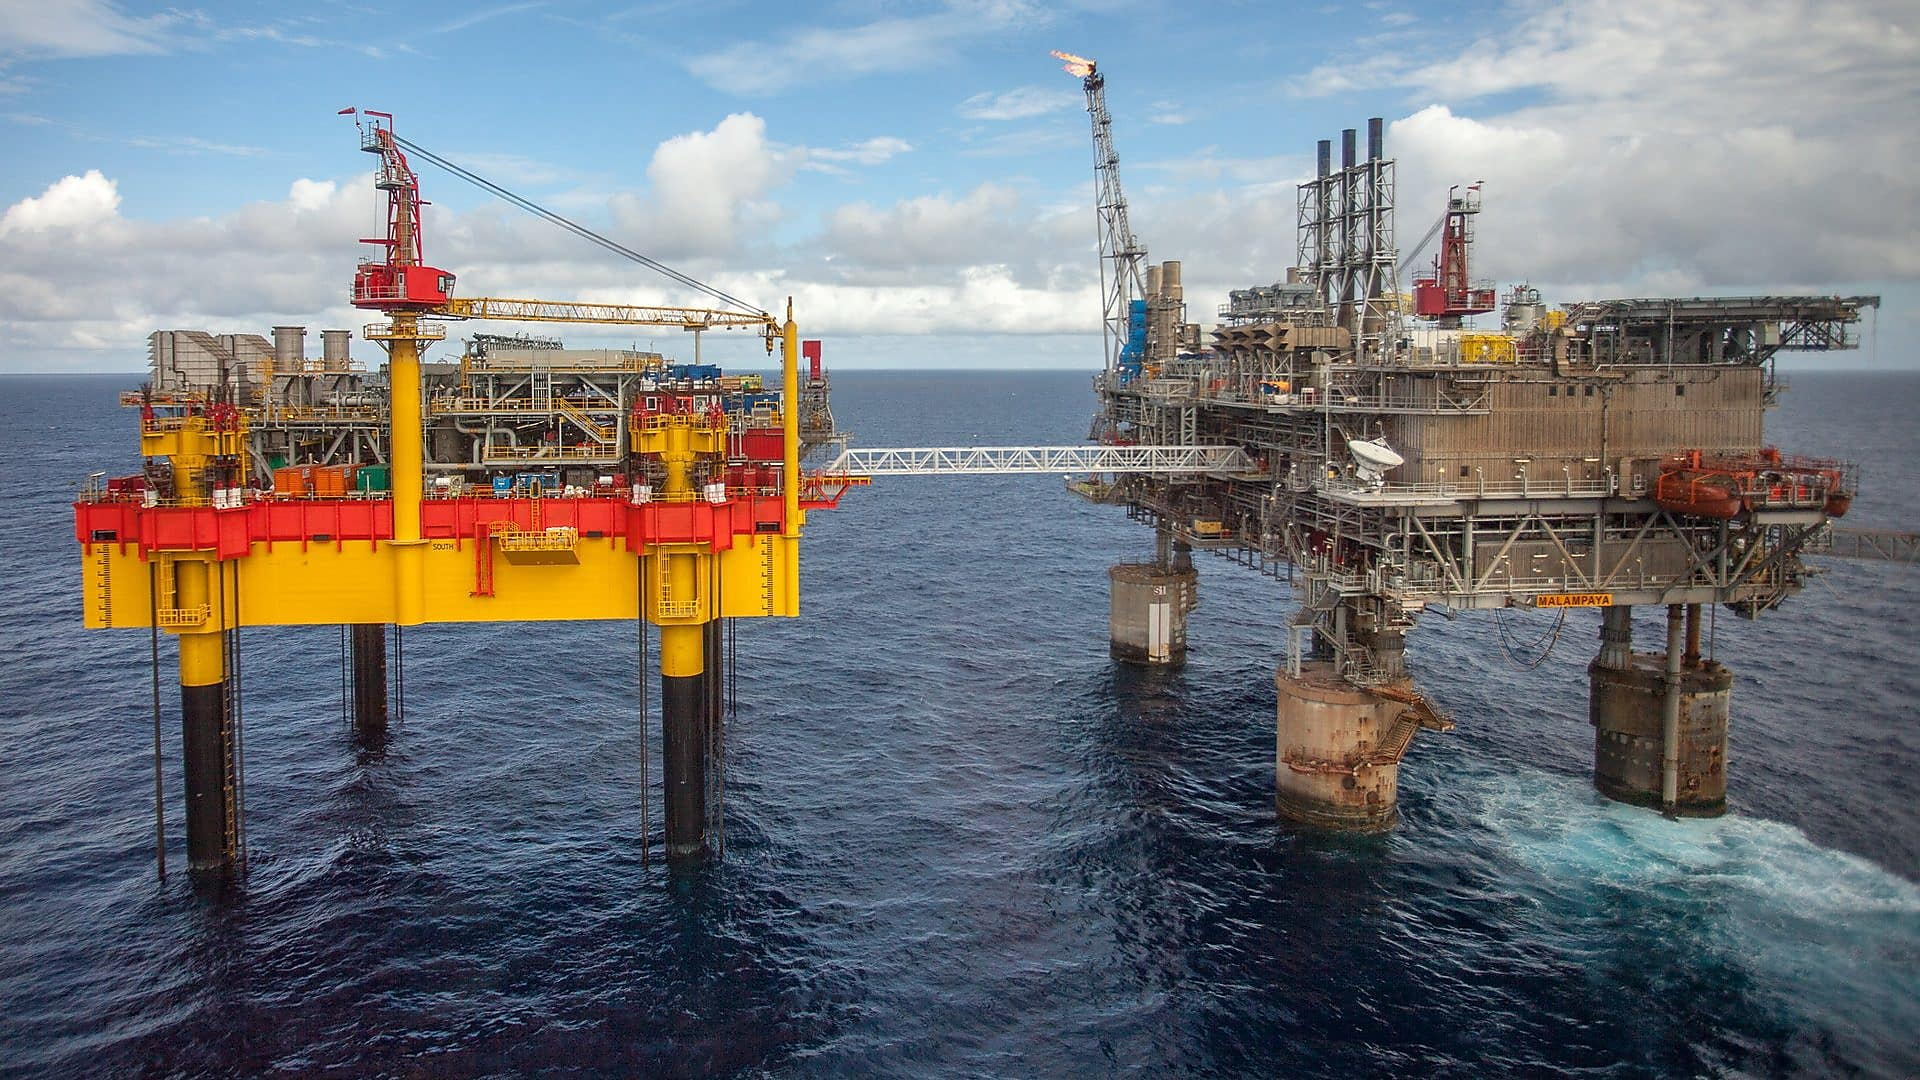 Shell Drillings In The South Pole And Why It Is Not A Good Idea?